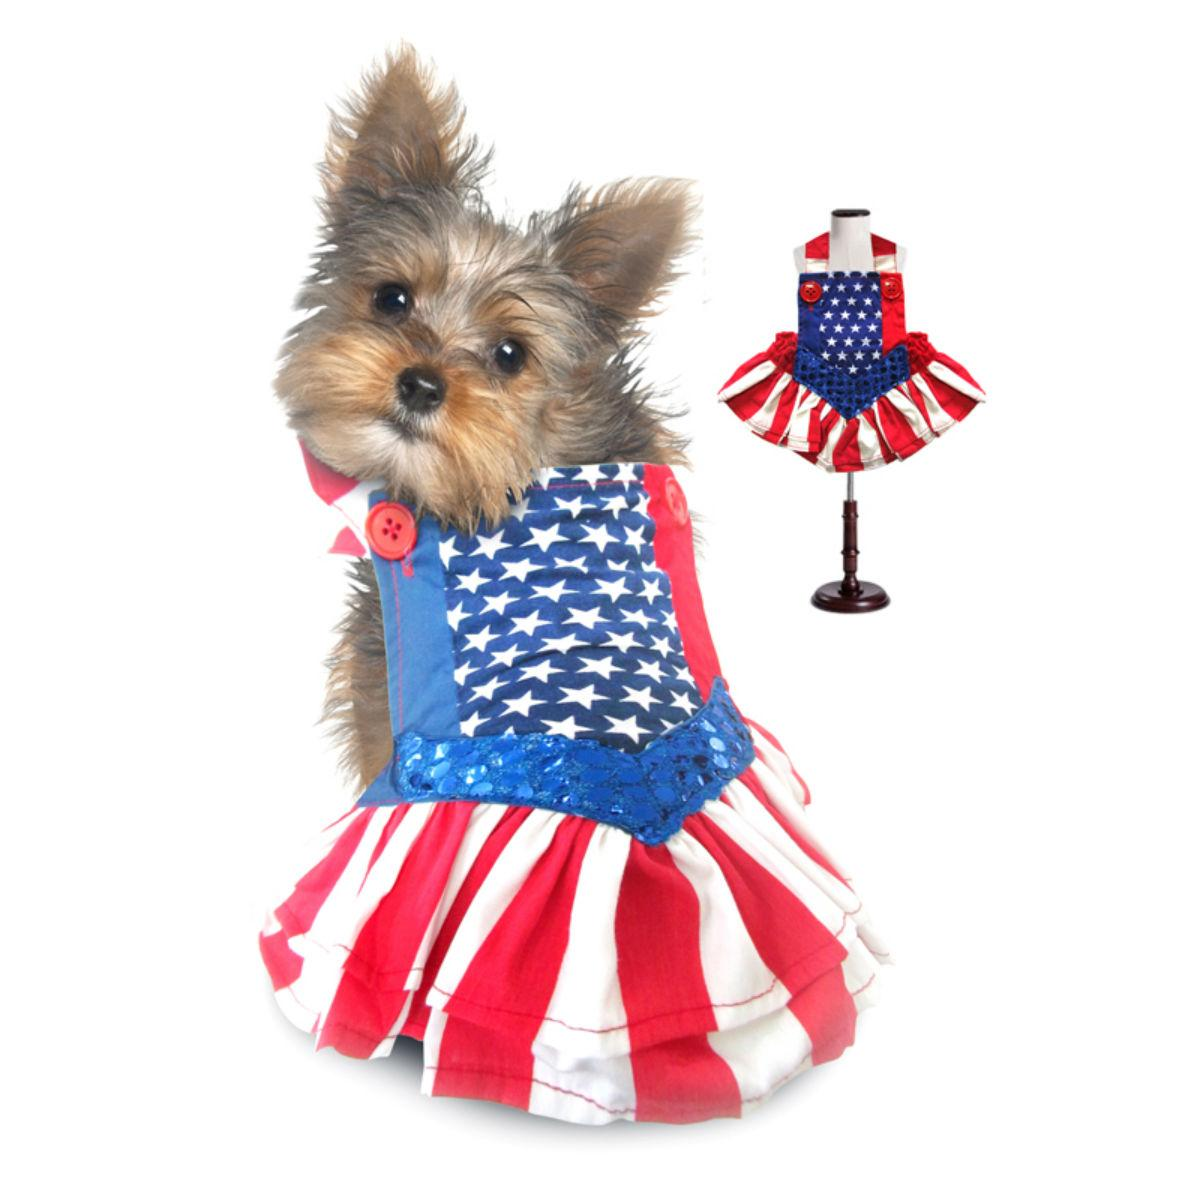 Superhero Dog Costume - Wonder Dog Dress